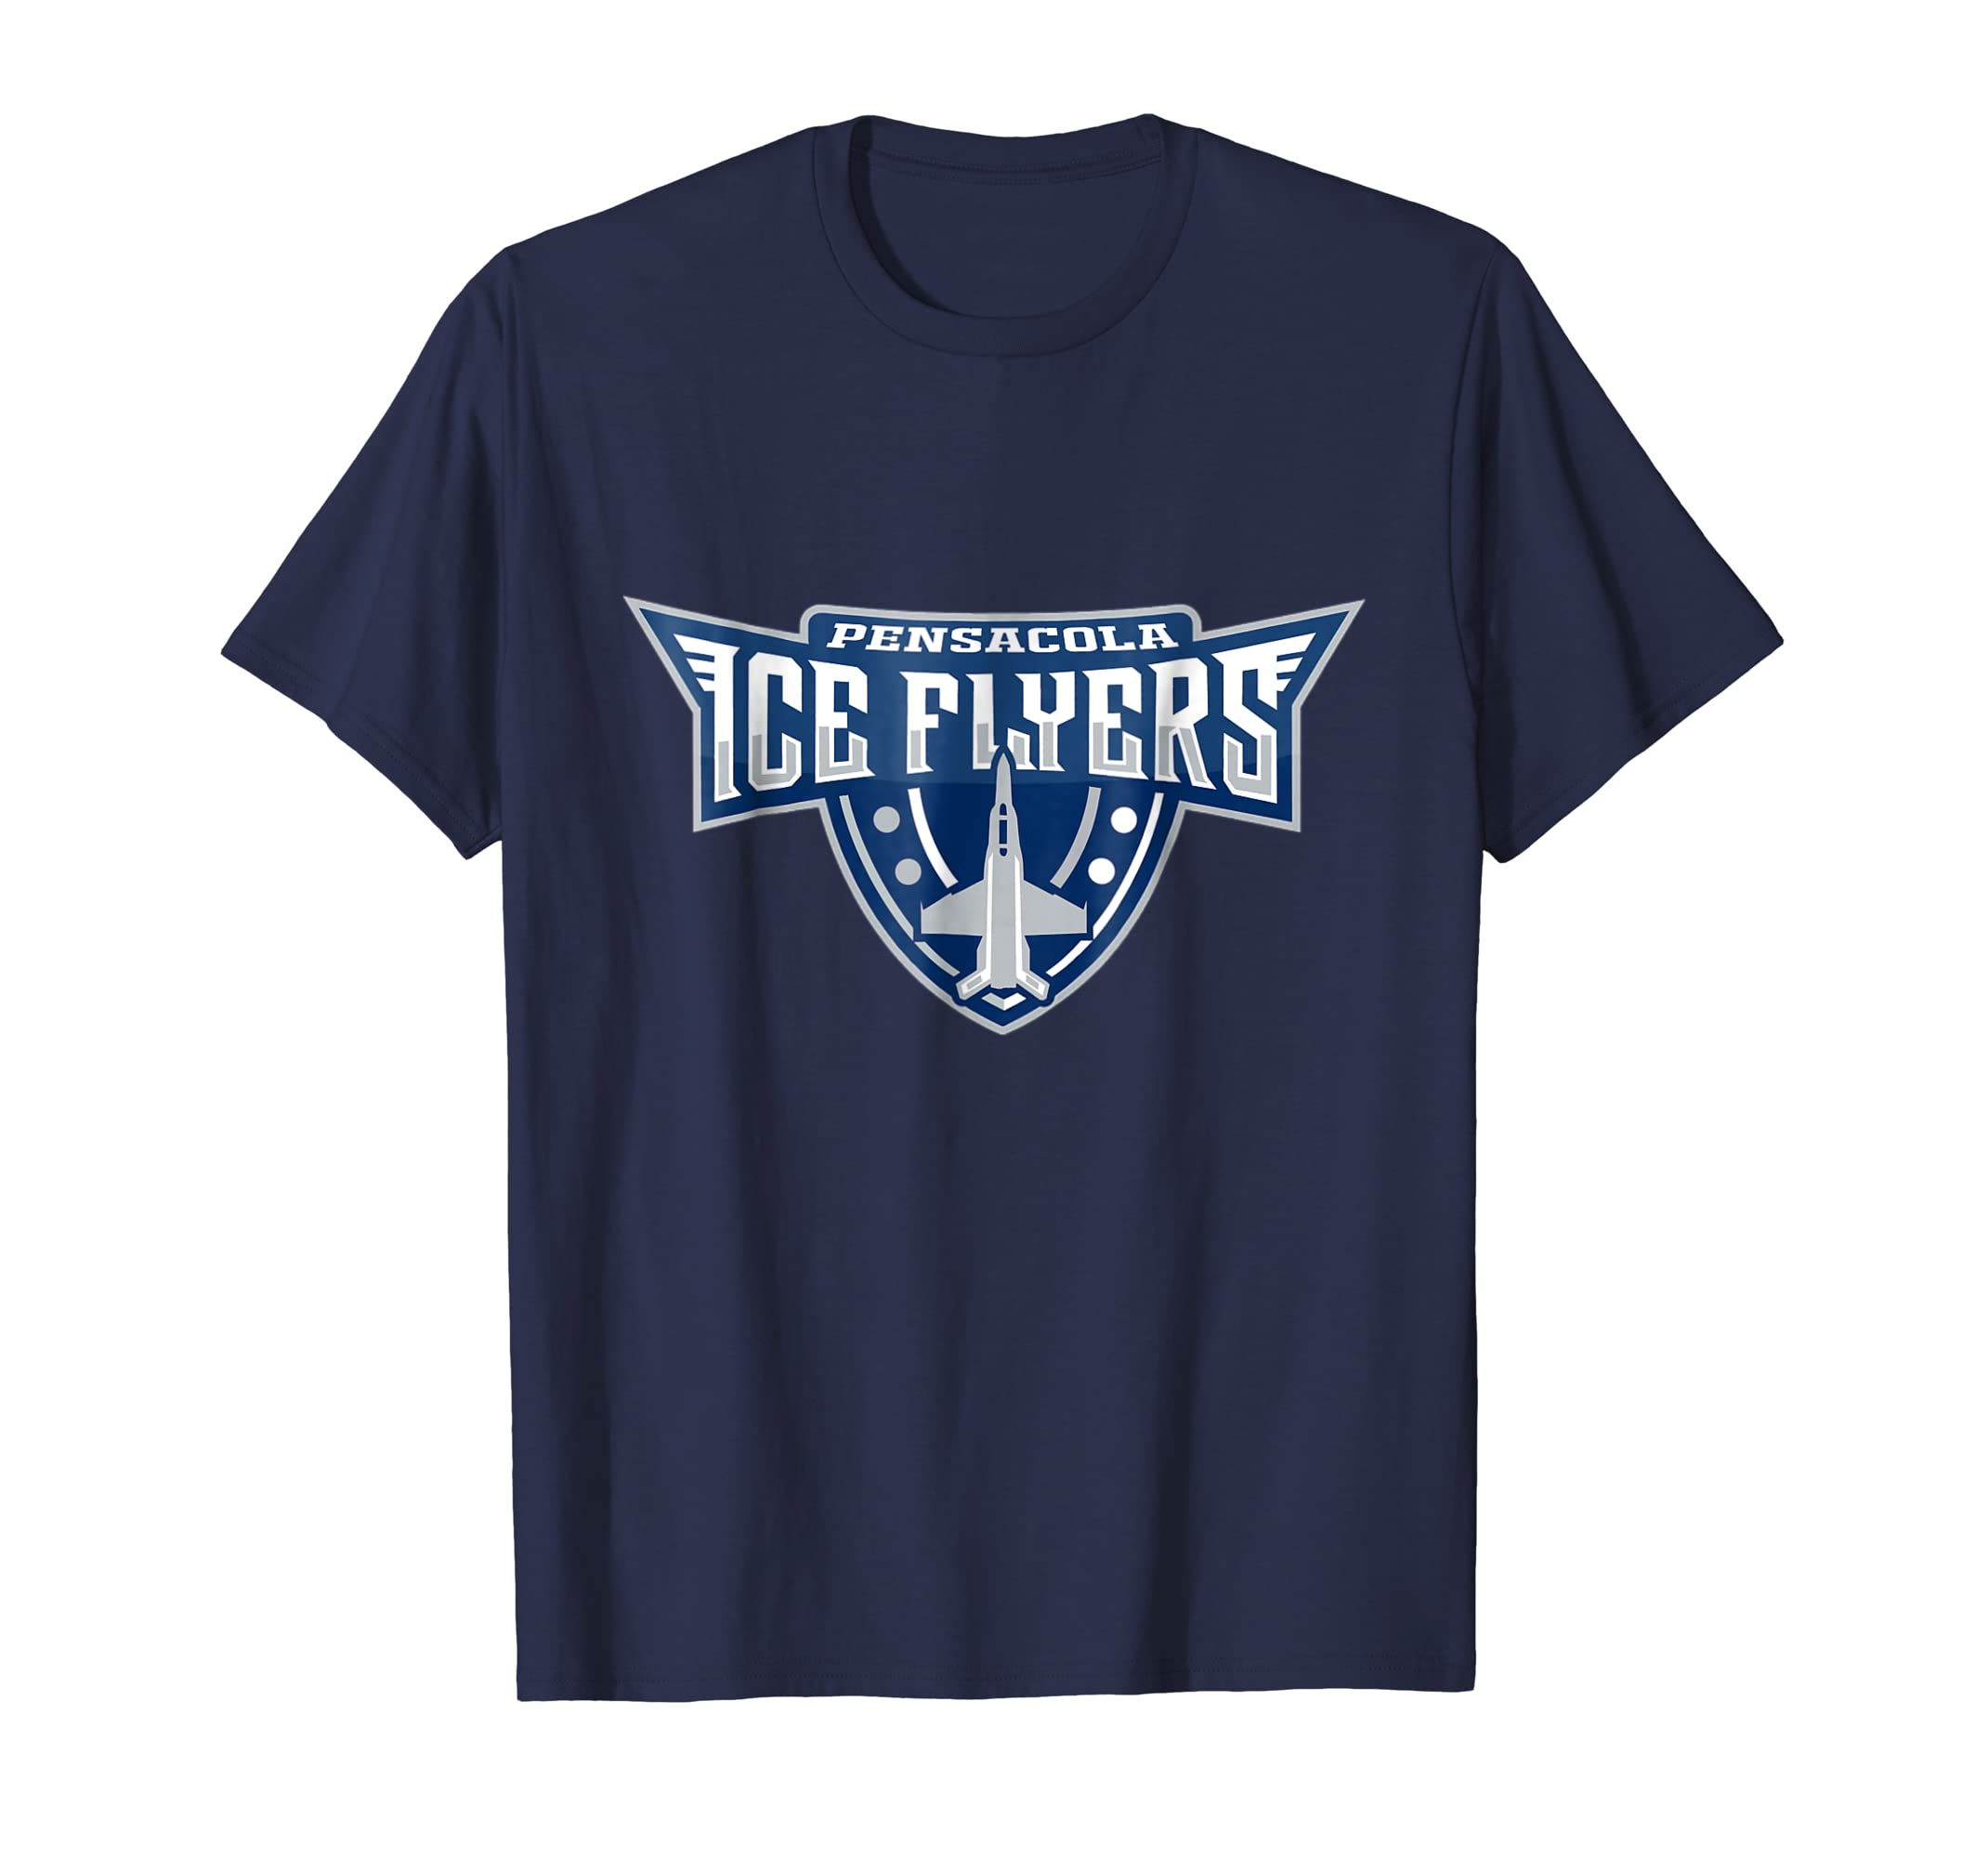 Pensacola Ice Flyers T shirt Logo Graphic Design-azvn